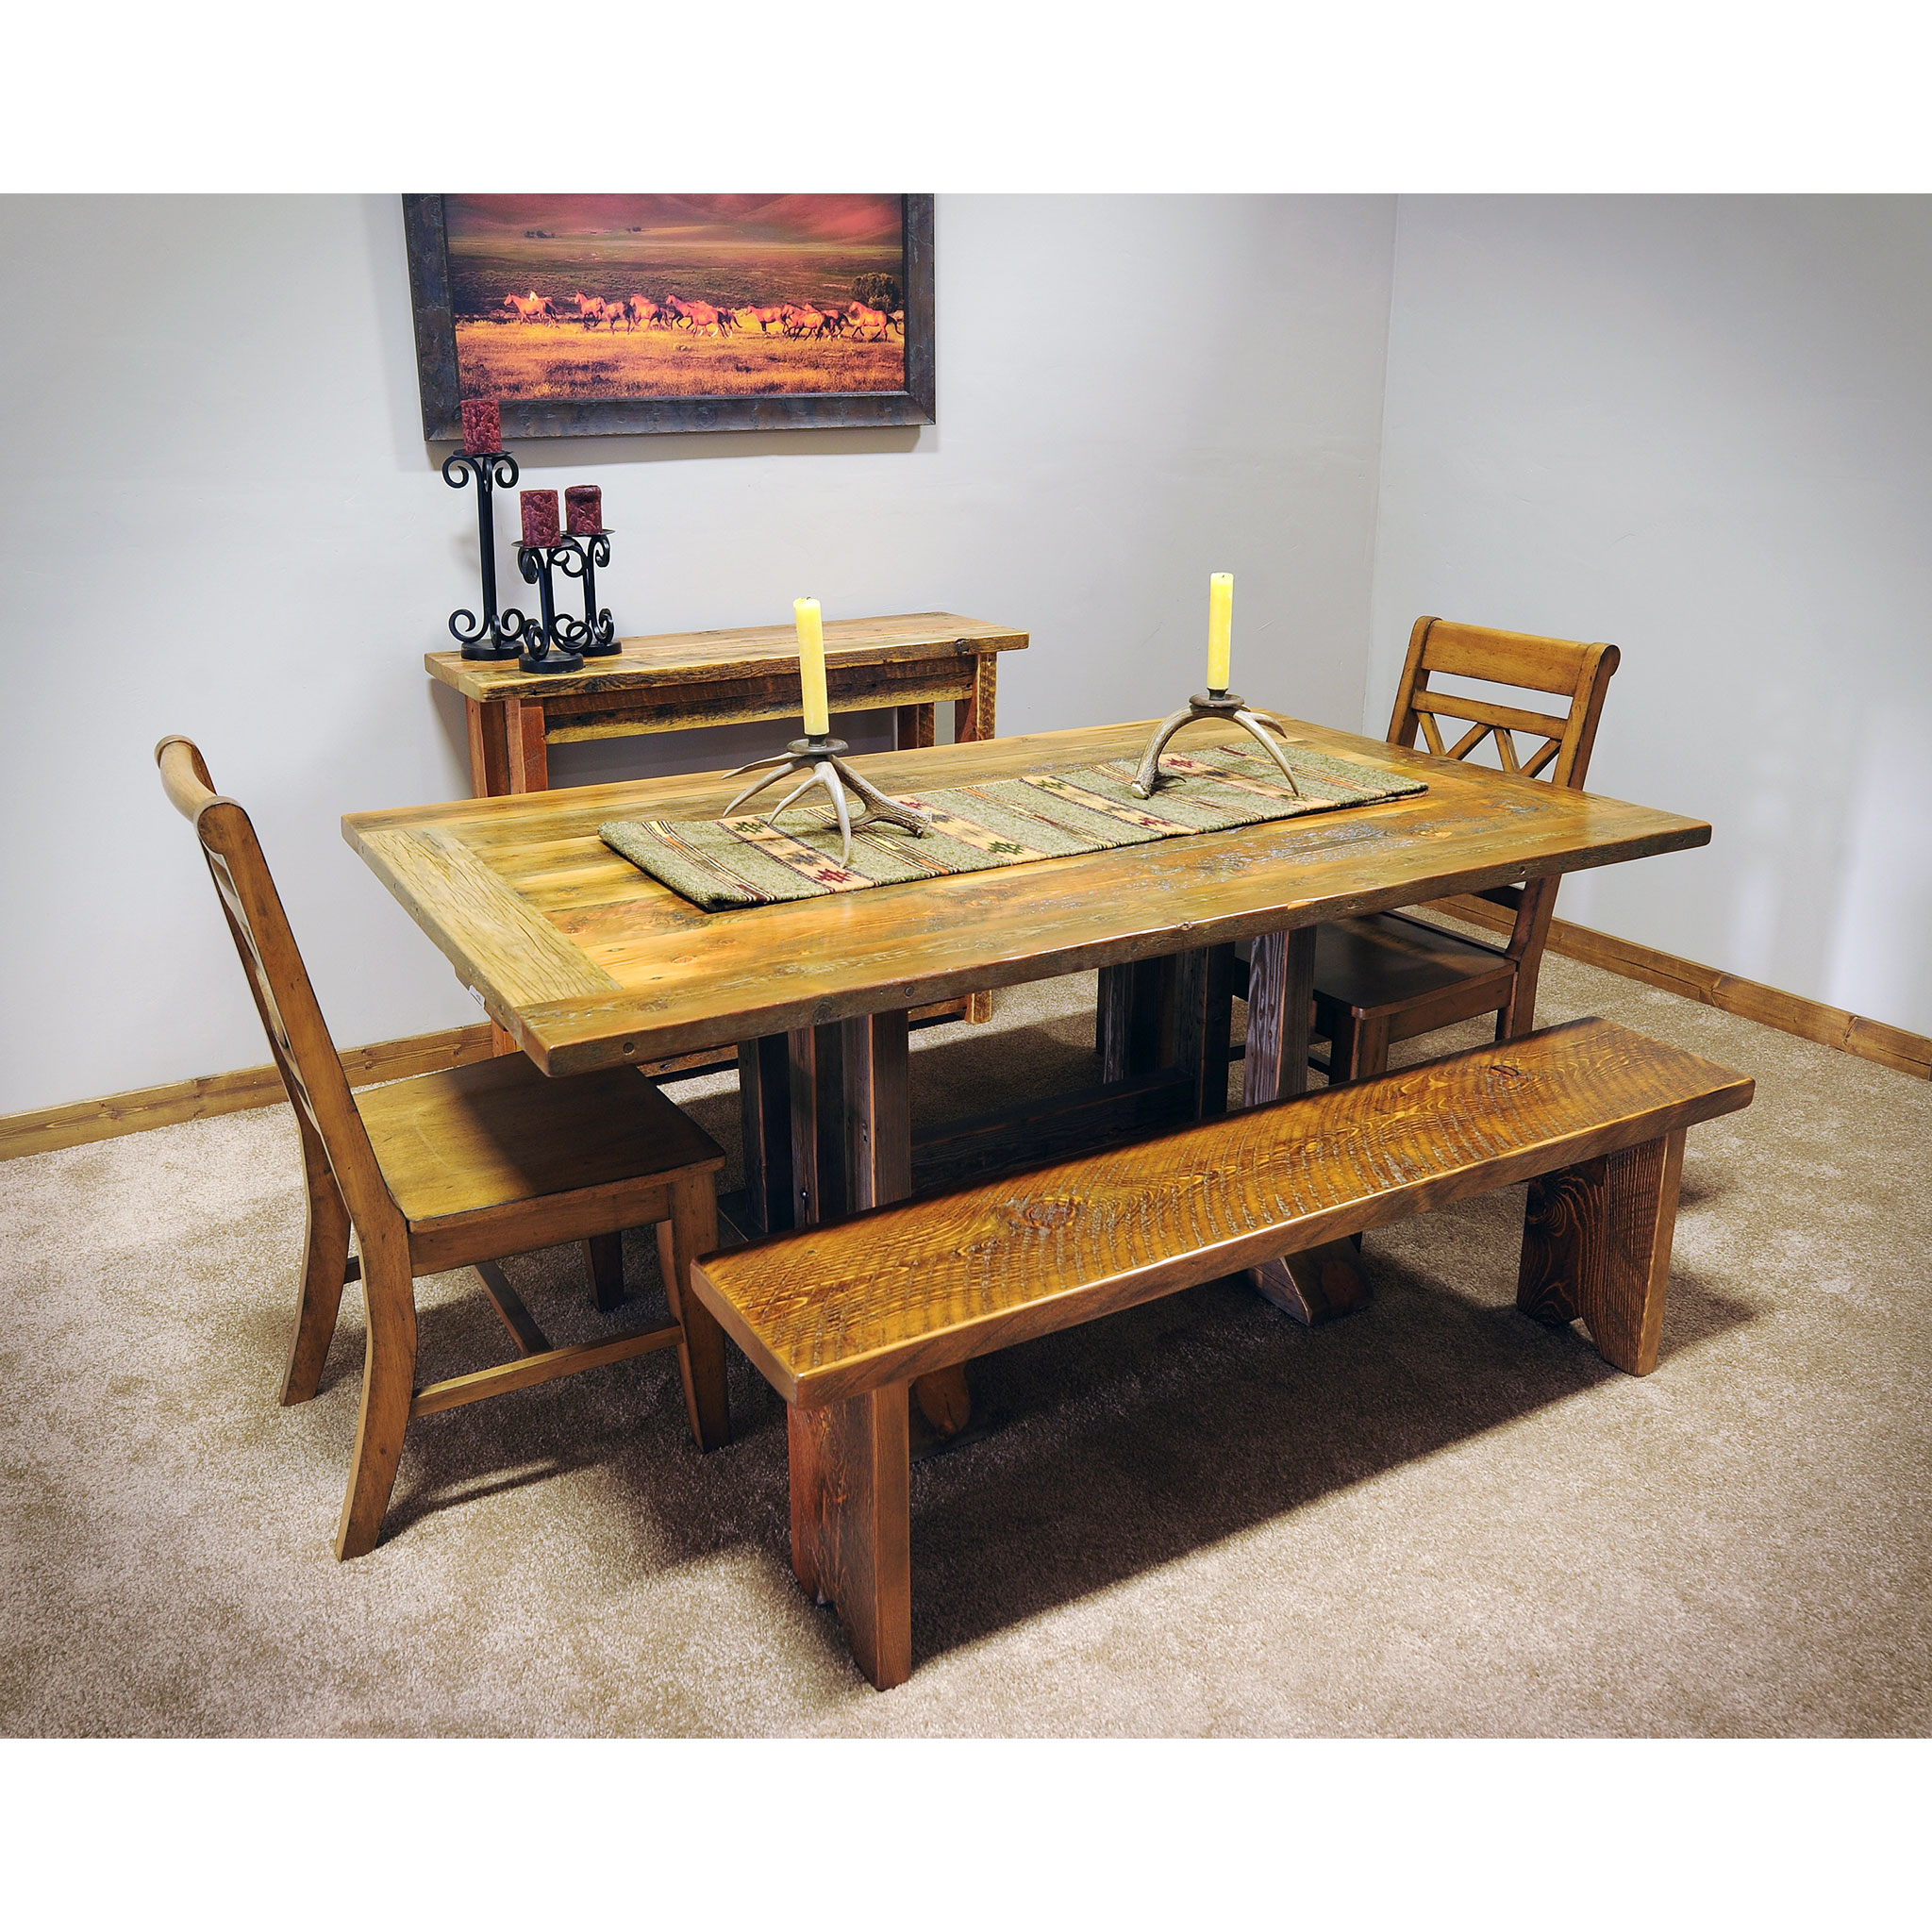 Black Family Diner 3 Piece Corner Dining: Reclaimed Trestle Dining Table With Metal Base